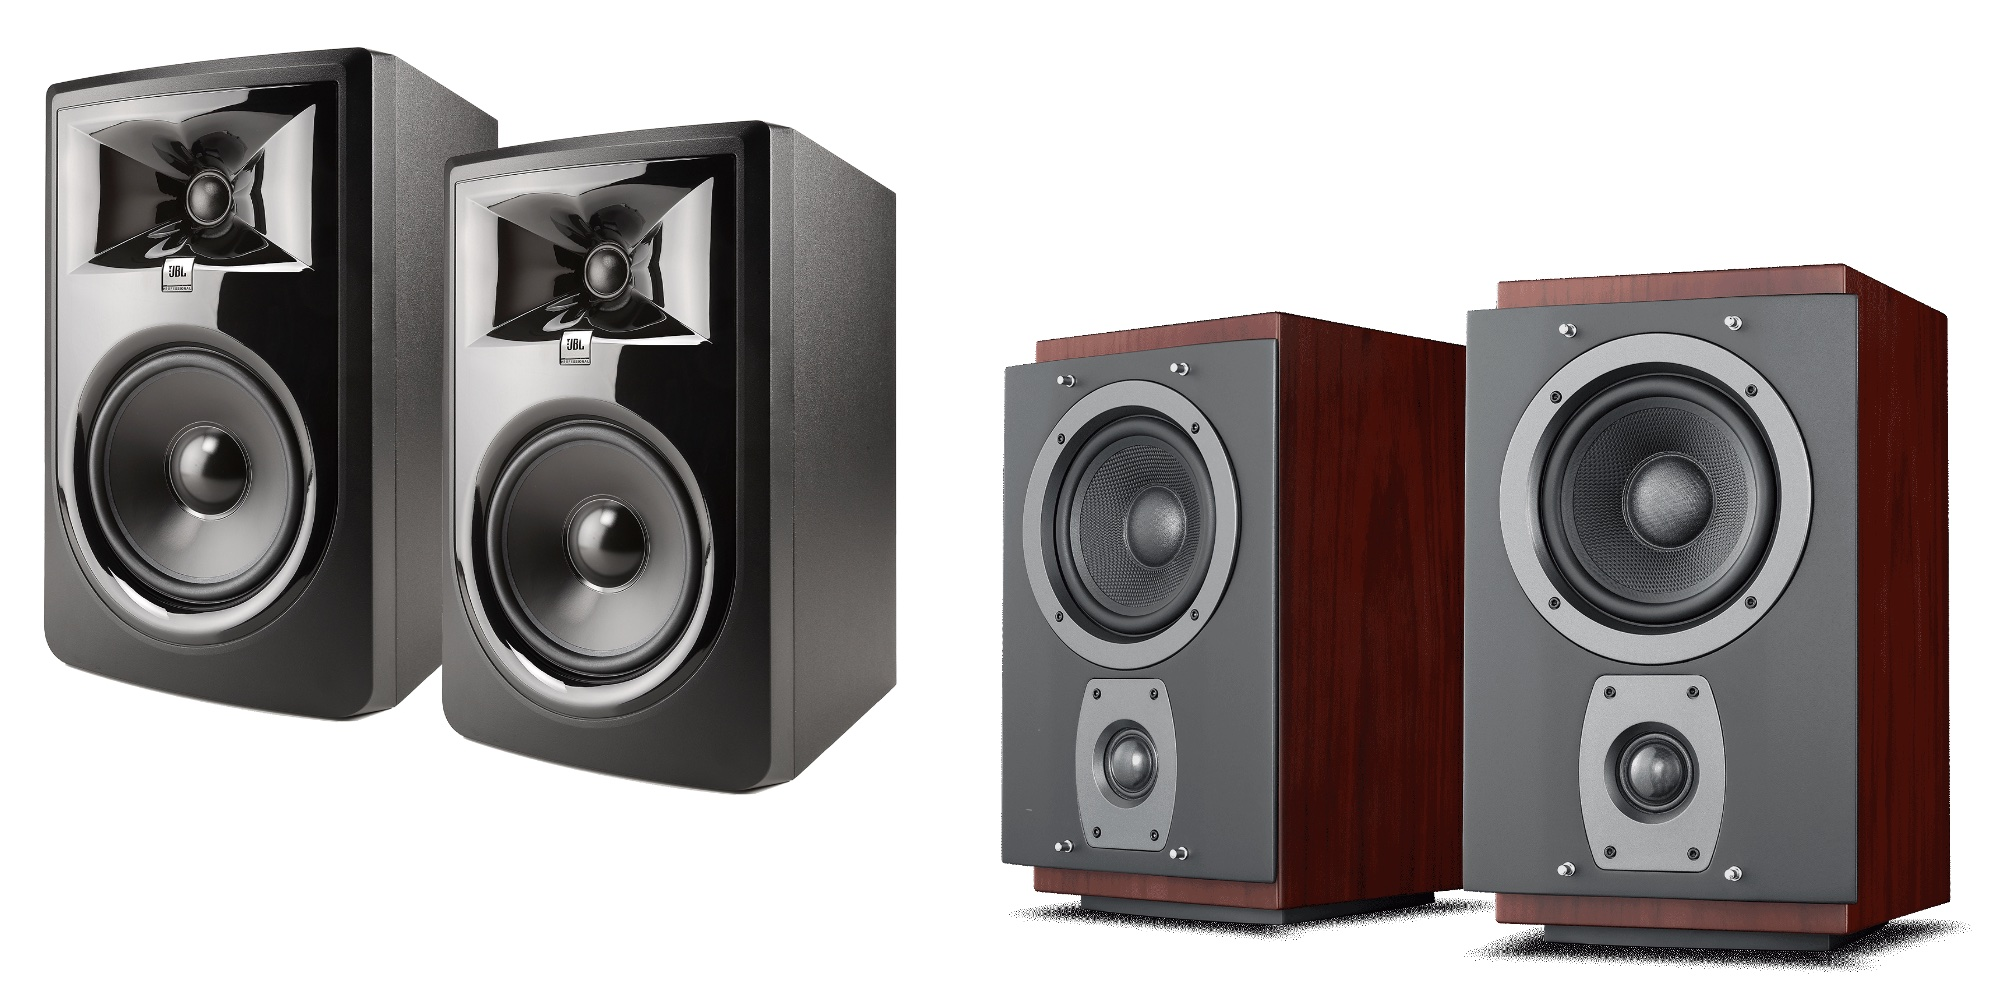 Save $80 on a pair of JBL's 306P 6-inch MkII Studio Monitors at $119 shipped, more